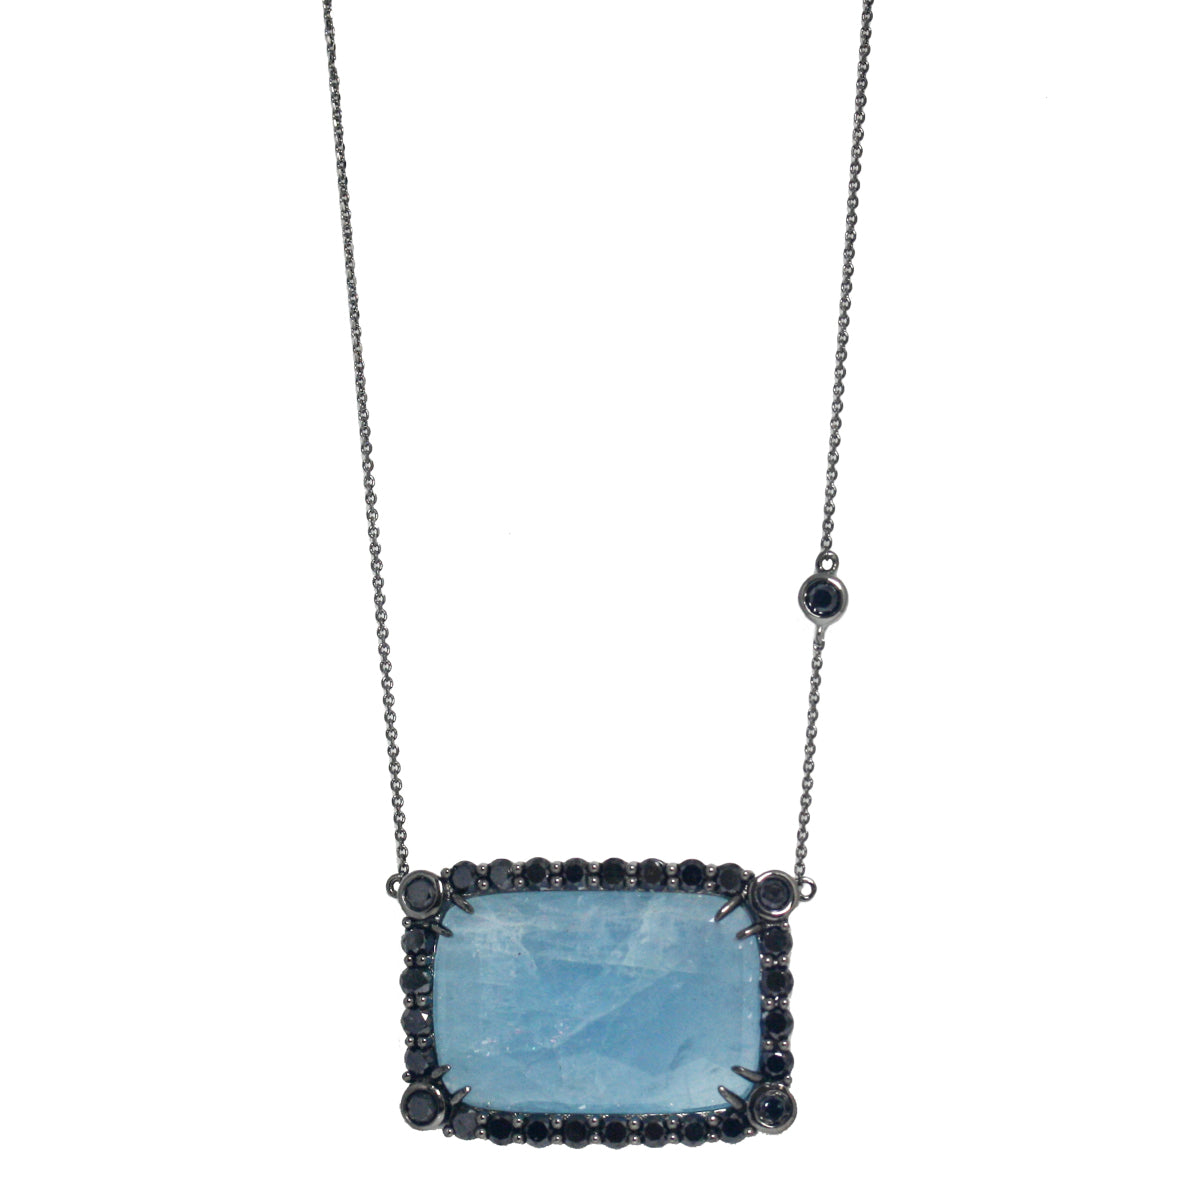 Anika Necklace Black Diamond Milky Aquamarine Silver